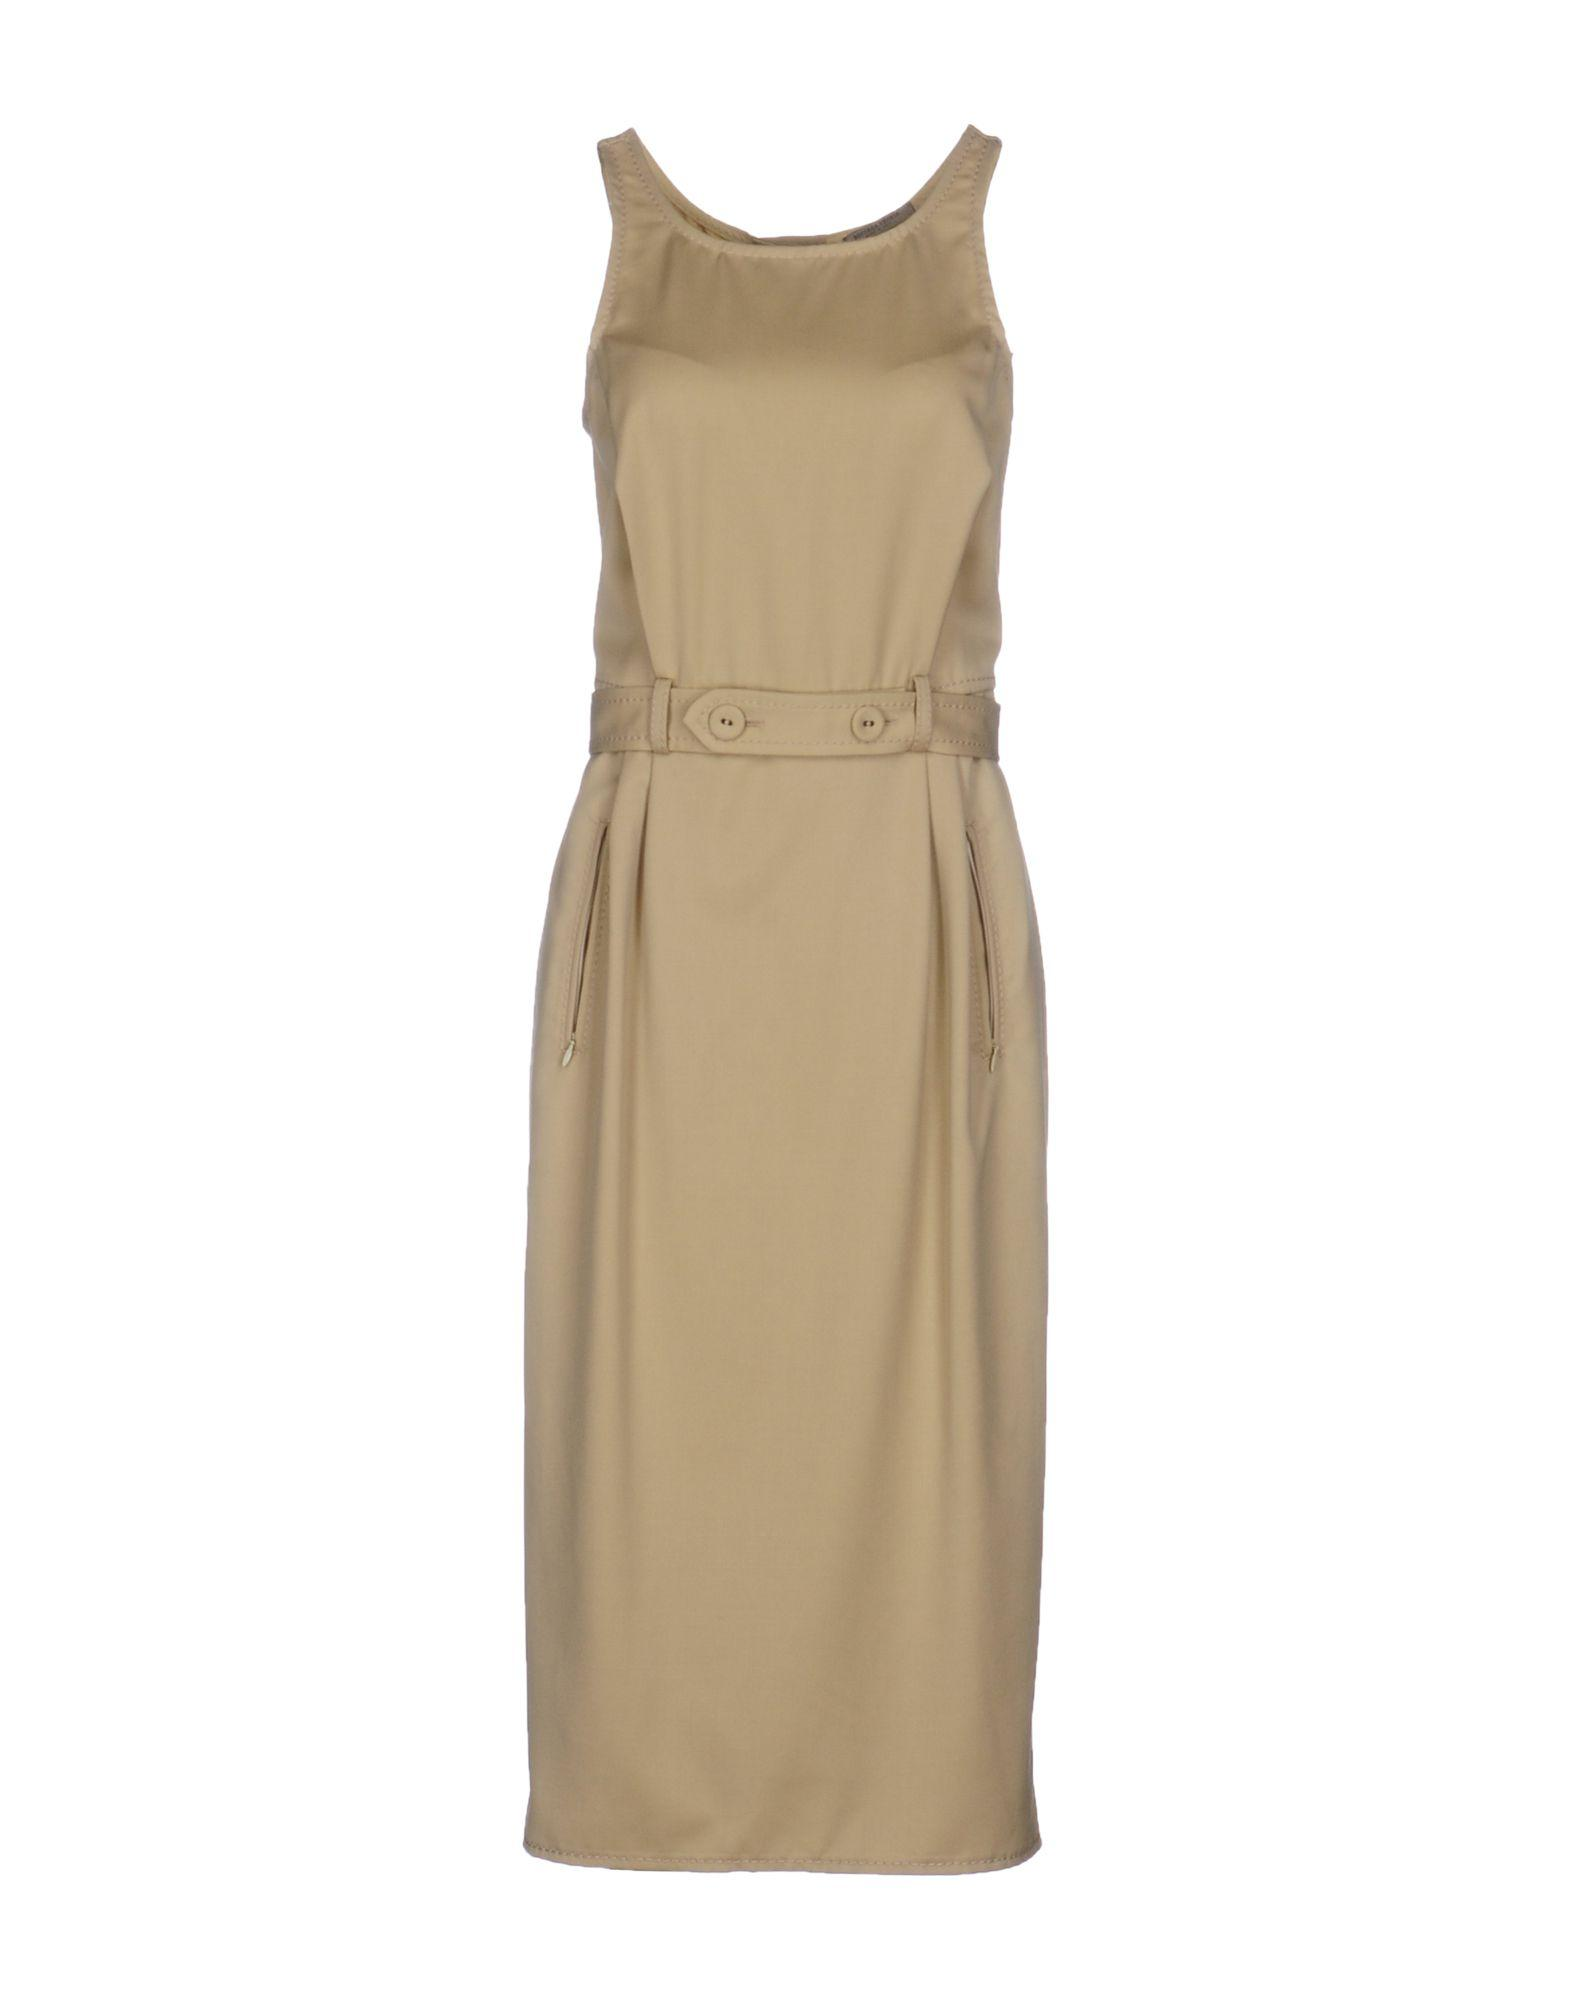 Bottega veneta Knee-length Dress in Natural